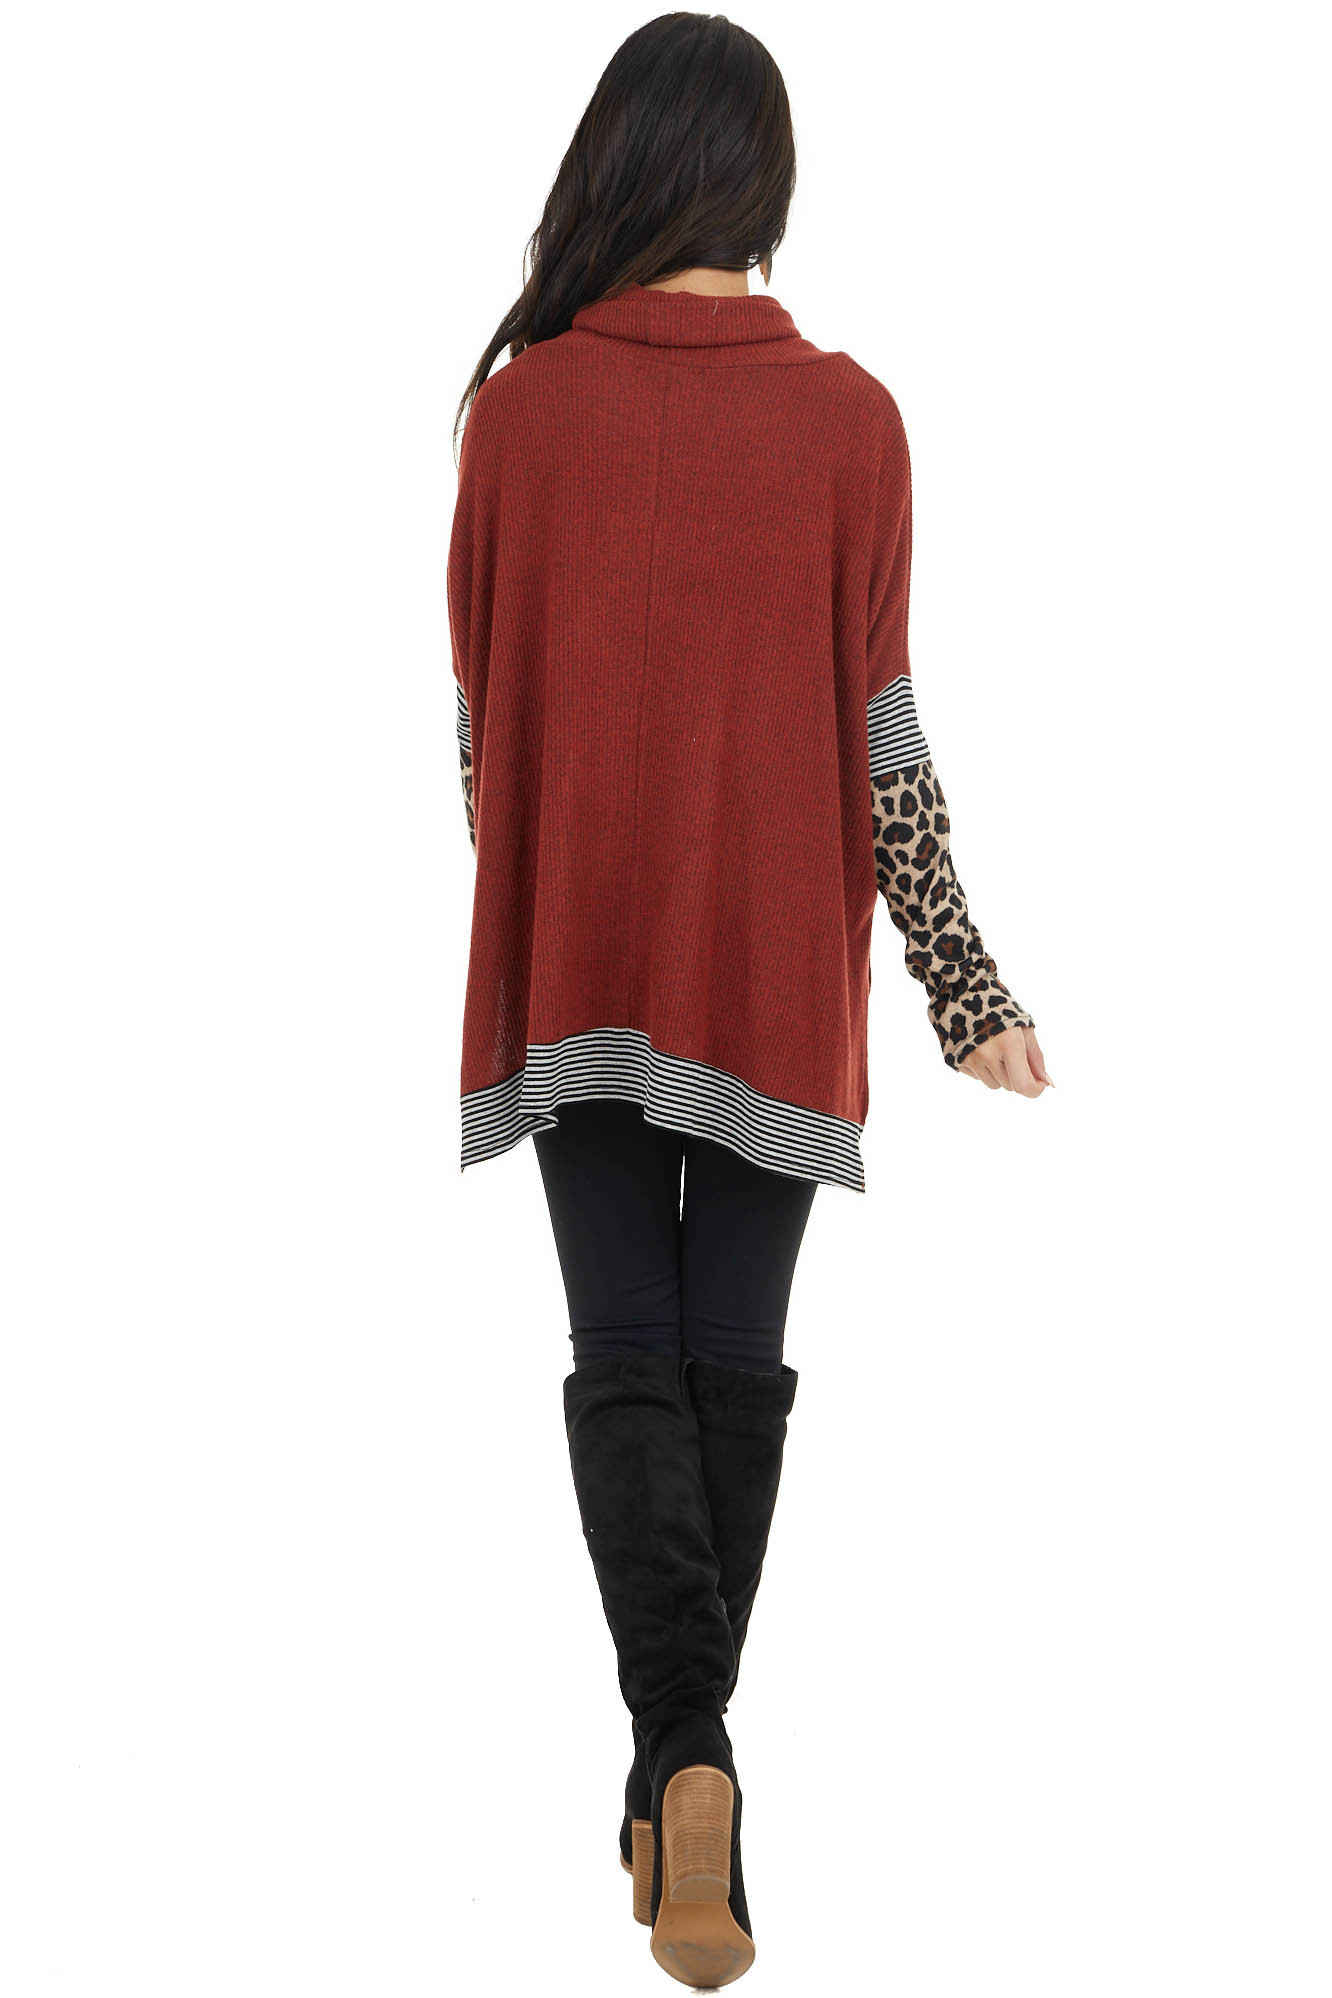 Rust Multiprint Ribbed Long Sleeve Top with Cowl Neck